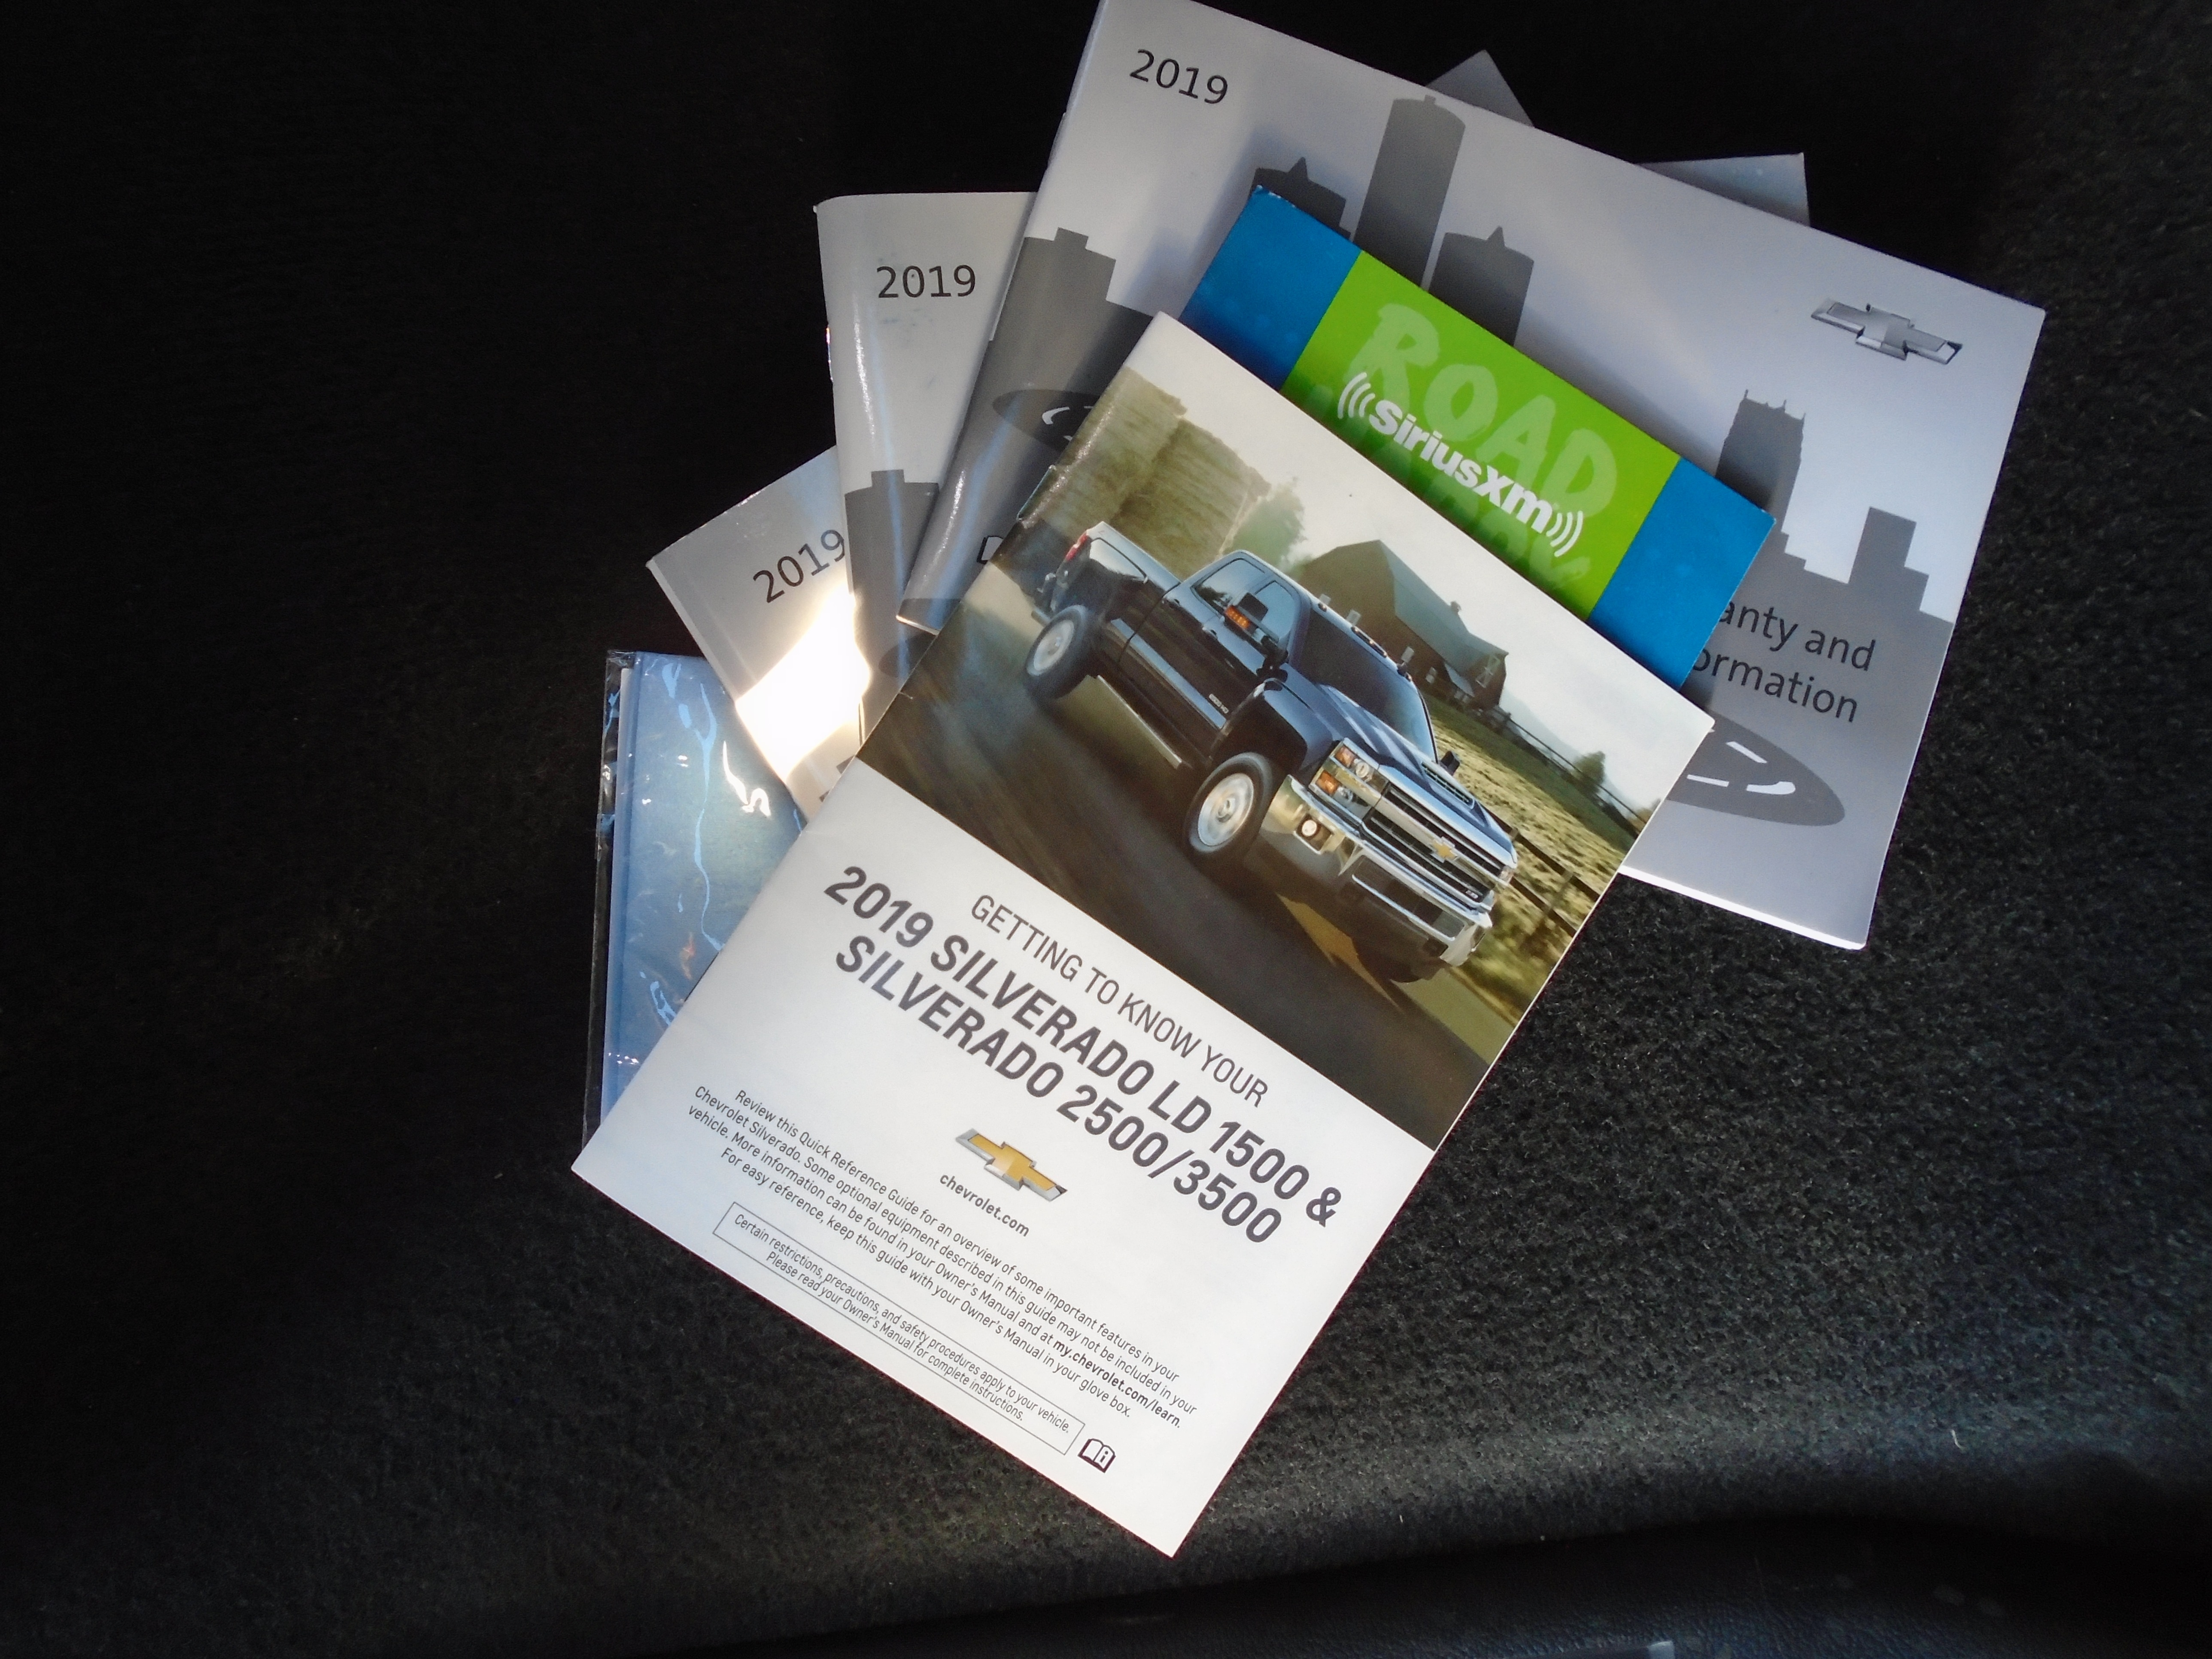 2016 Chevrolet Silverado 1500 2500 3500 Owners Manual with warranty guide